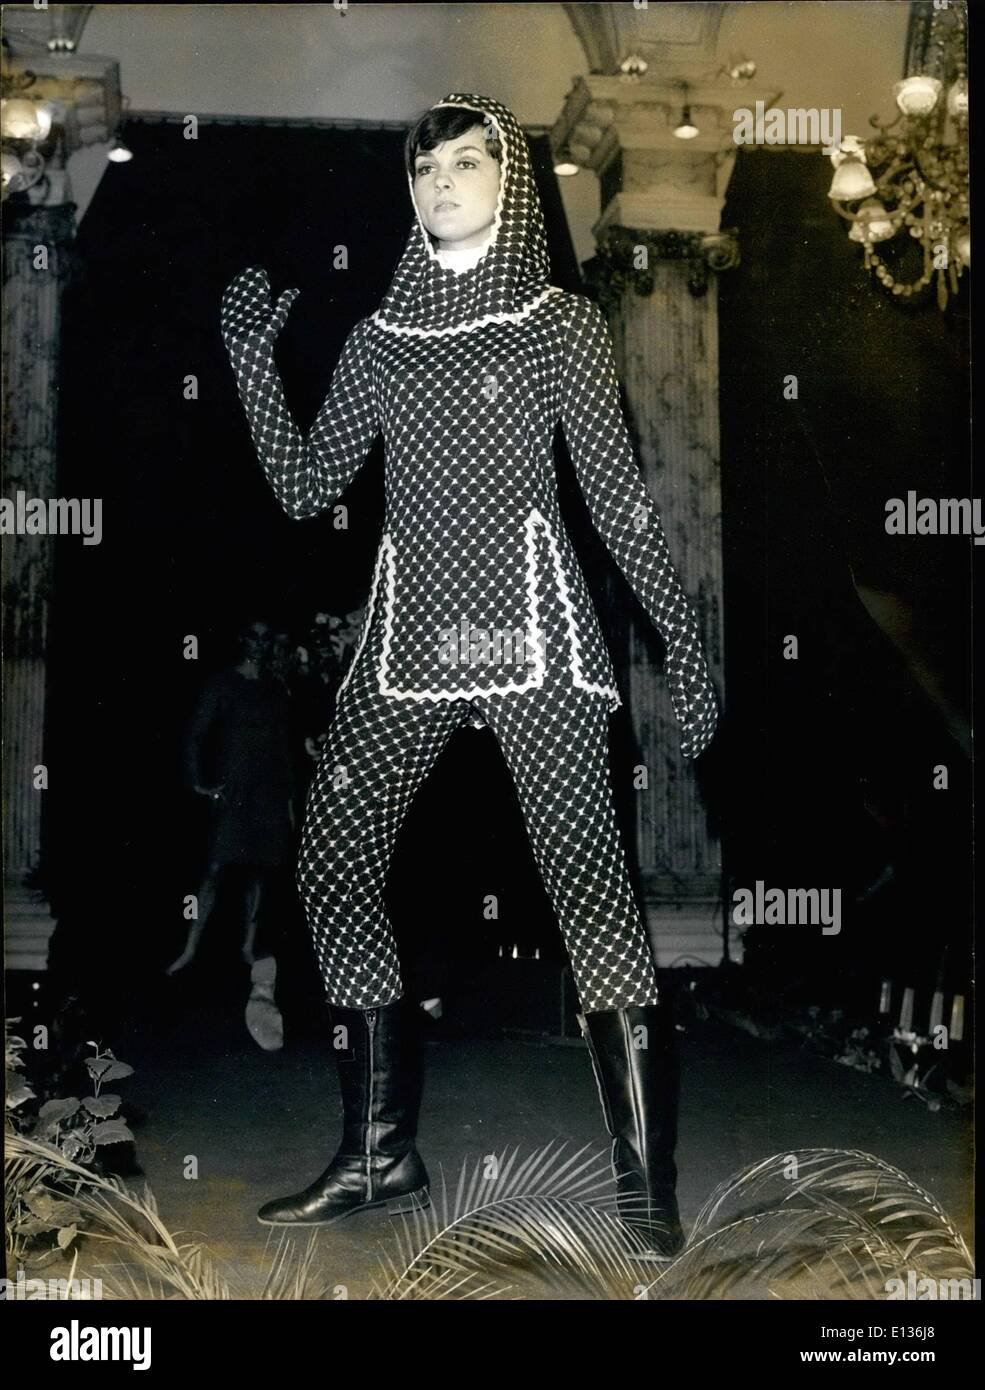 Feb. 28, 2012 - Paris Fashions. Autumn and winter collections are being shown at the Grand Hotel where the Annual Boutique show is being held now. OPS: A woolen jersey three piece suit with hood and mittains of medieval inspiration. April 22/66 - Stock Image